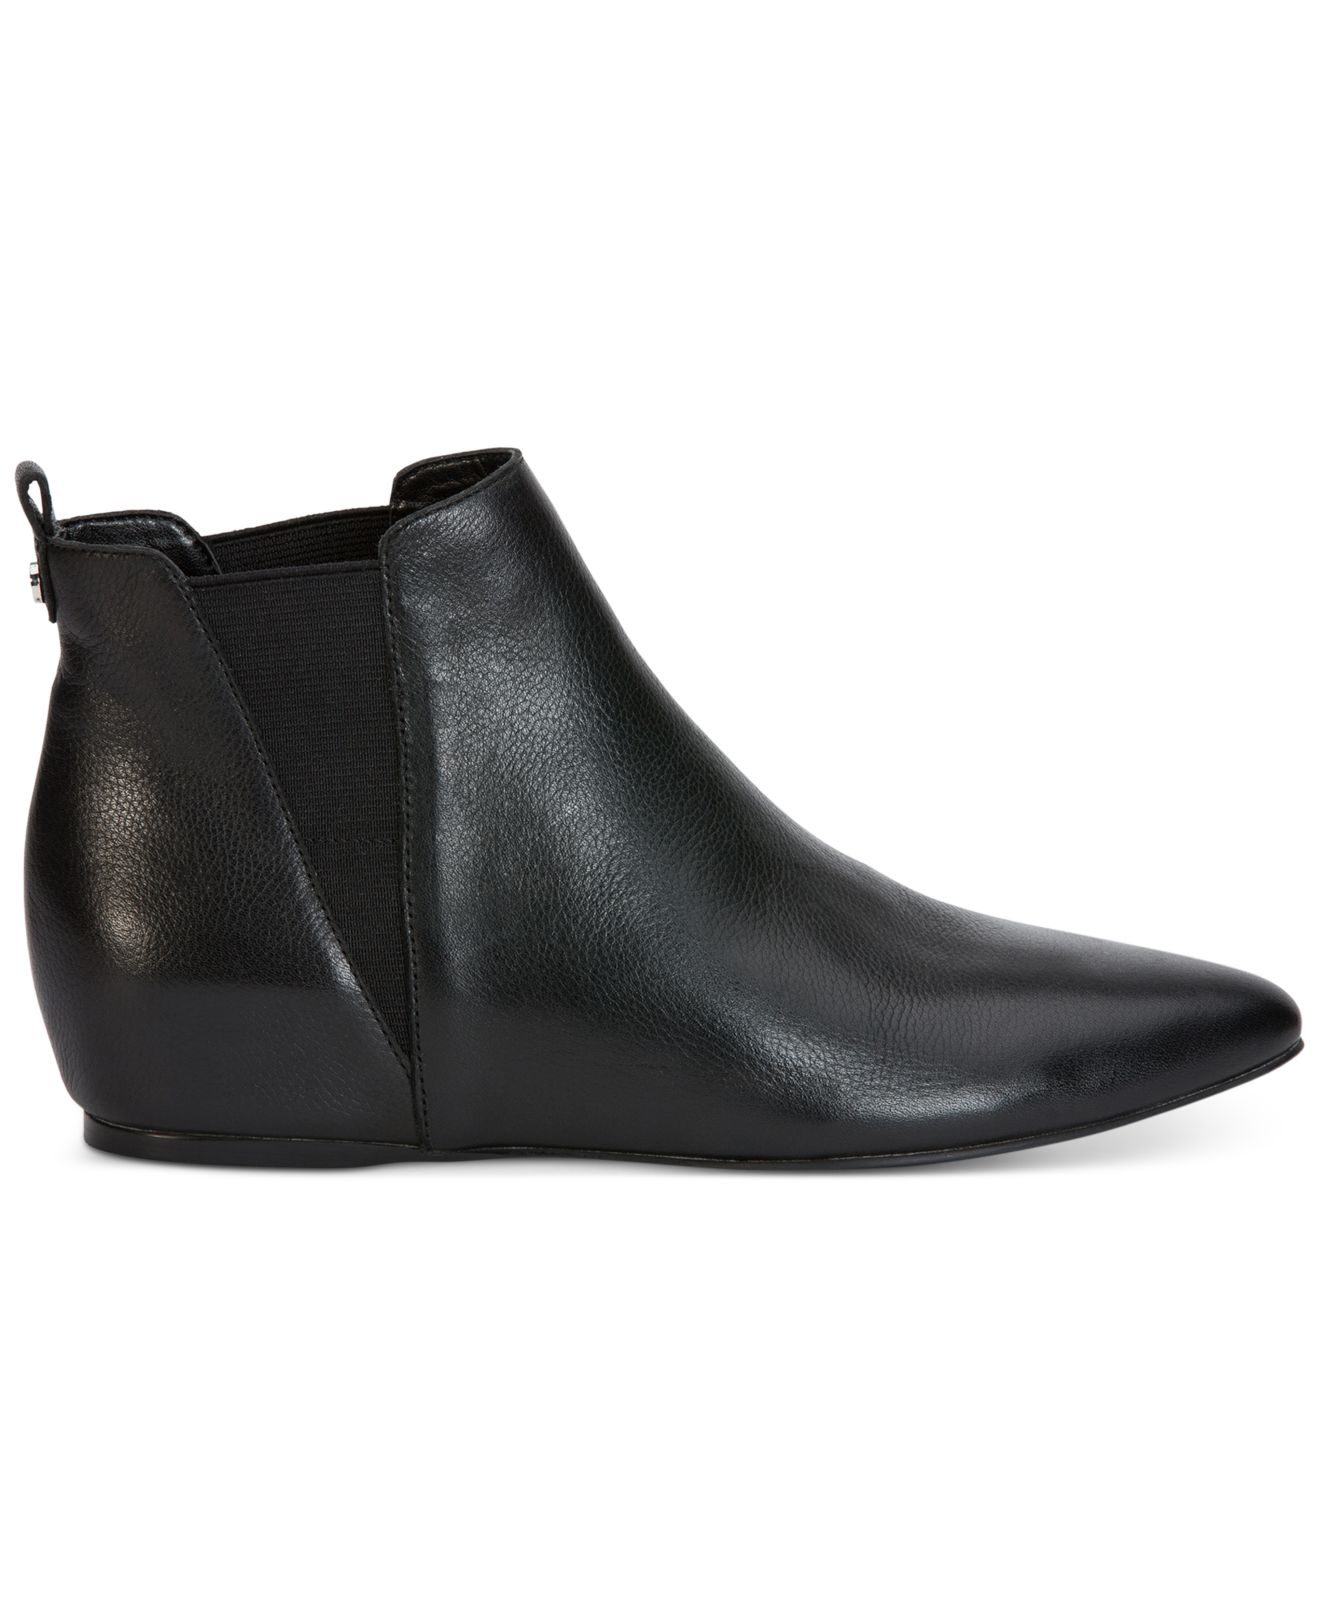 Cheap Wedge Booties Shoes